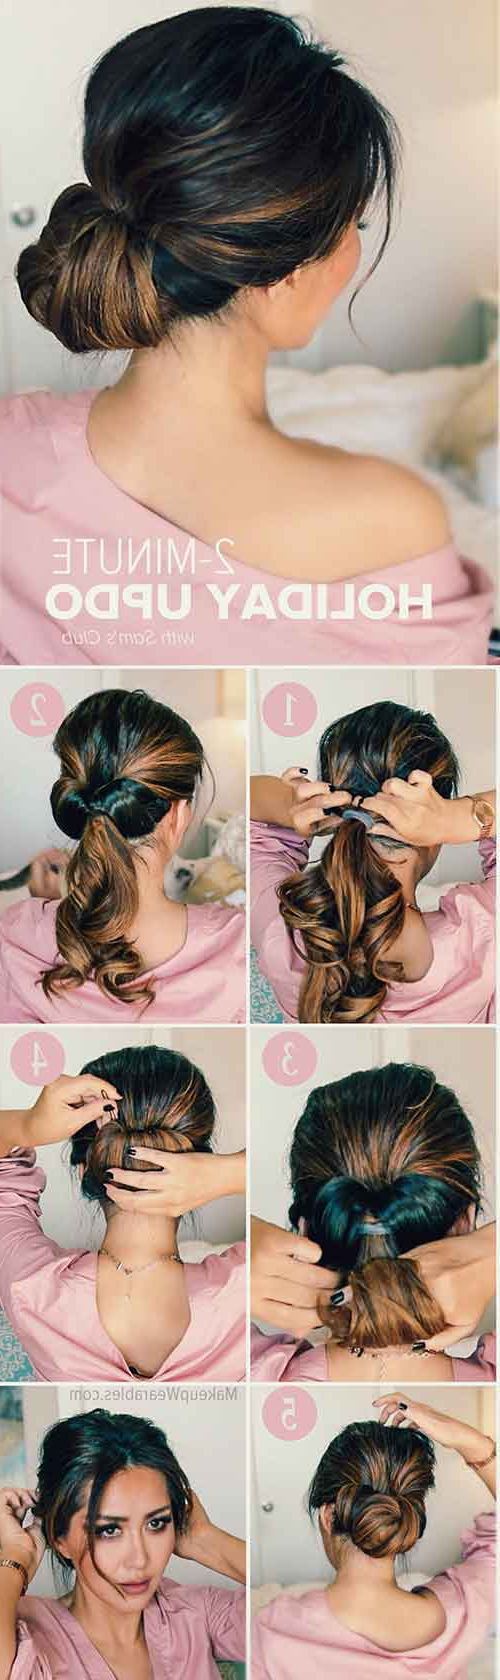 20 Stunningly Easy Diy Messy Buns Intended For Well Liked Wrap Around Ponytail Updo Hairstyles (View 13 of 20)